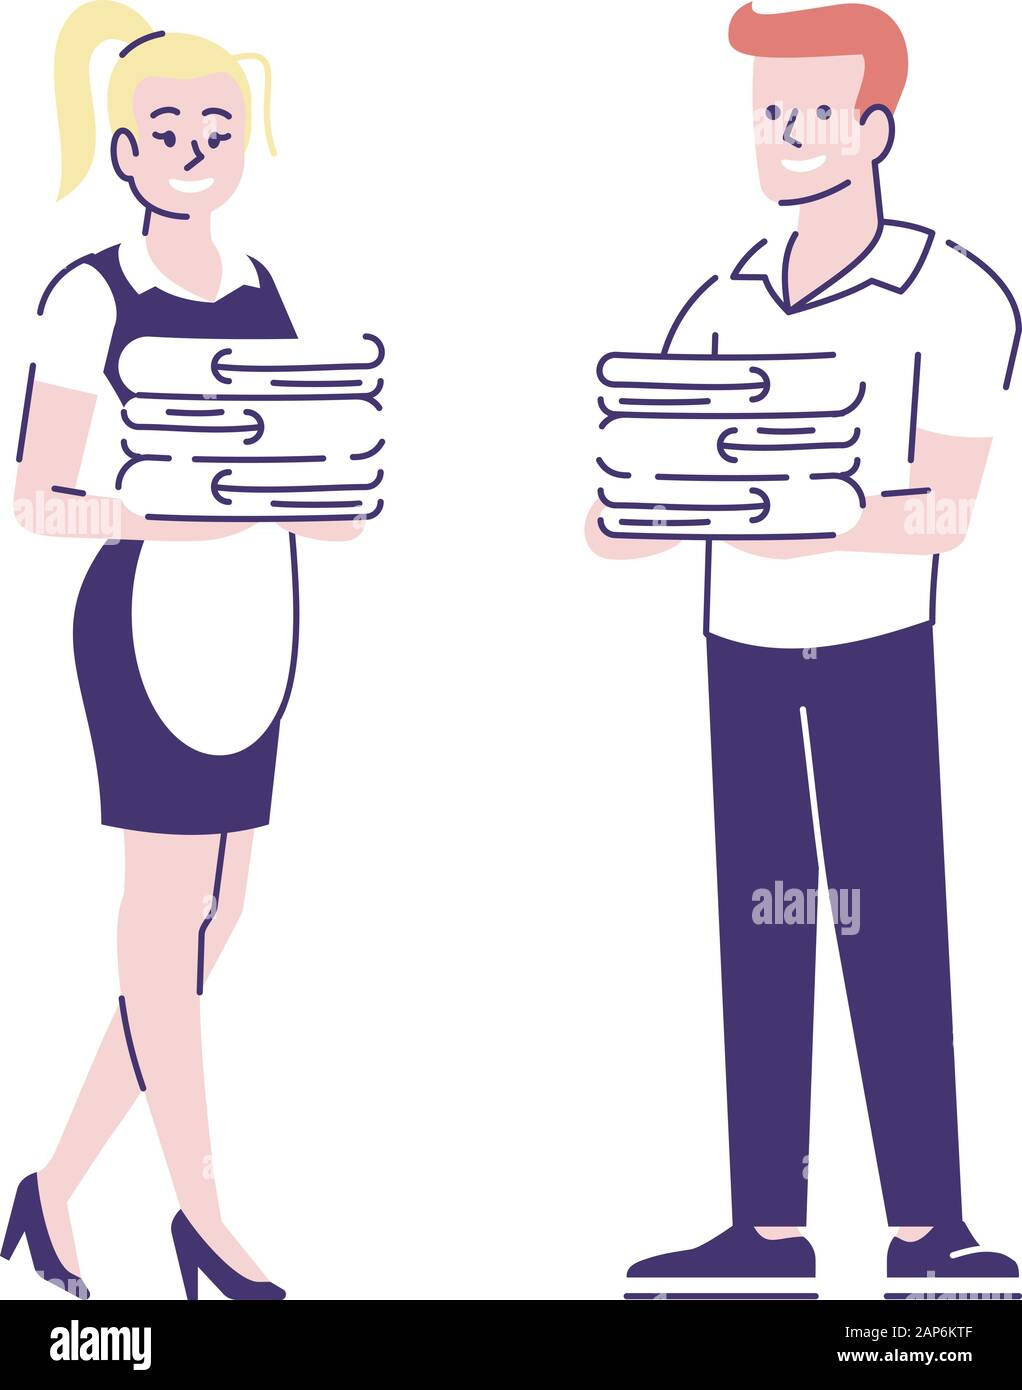 Maid And Butler Flat Vector Characters Professional Housekeepers Housemaid Cartoon Illustration Housework Housekeeping Chores Hotel Cleaning Serv Stock Vector Image Art Alamy